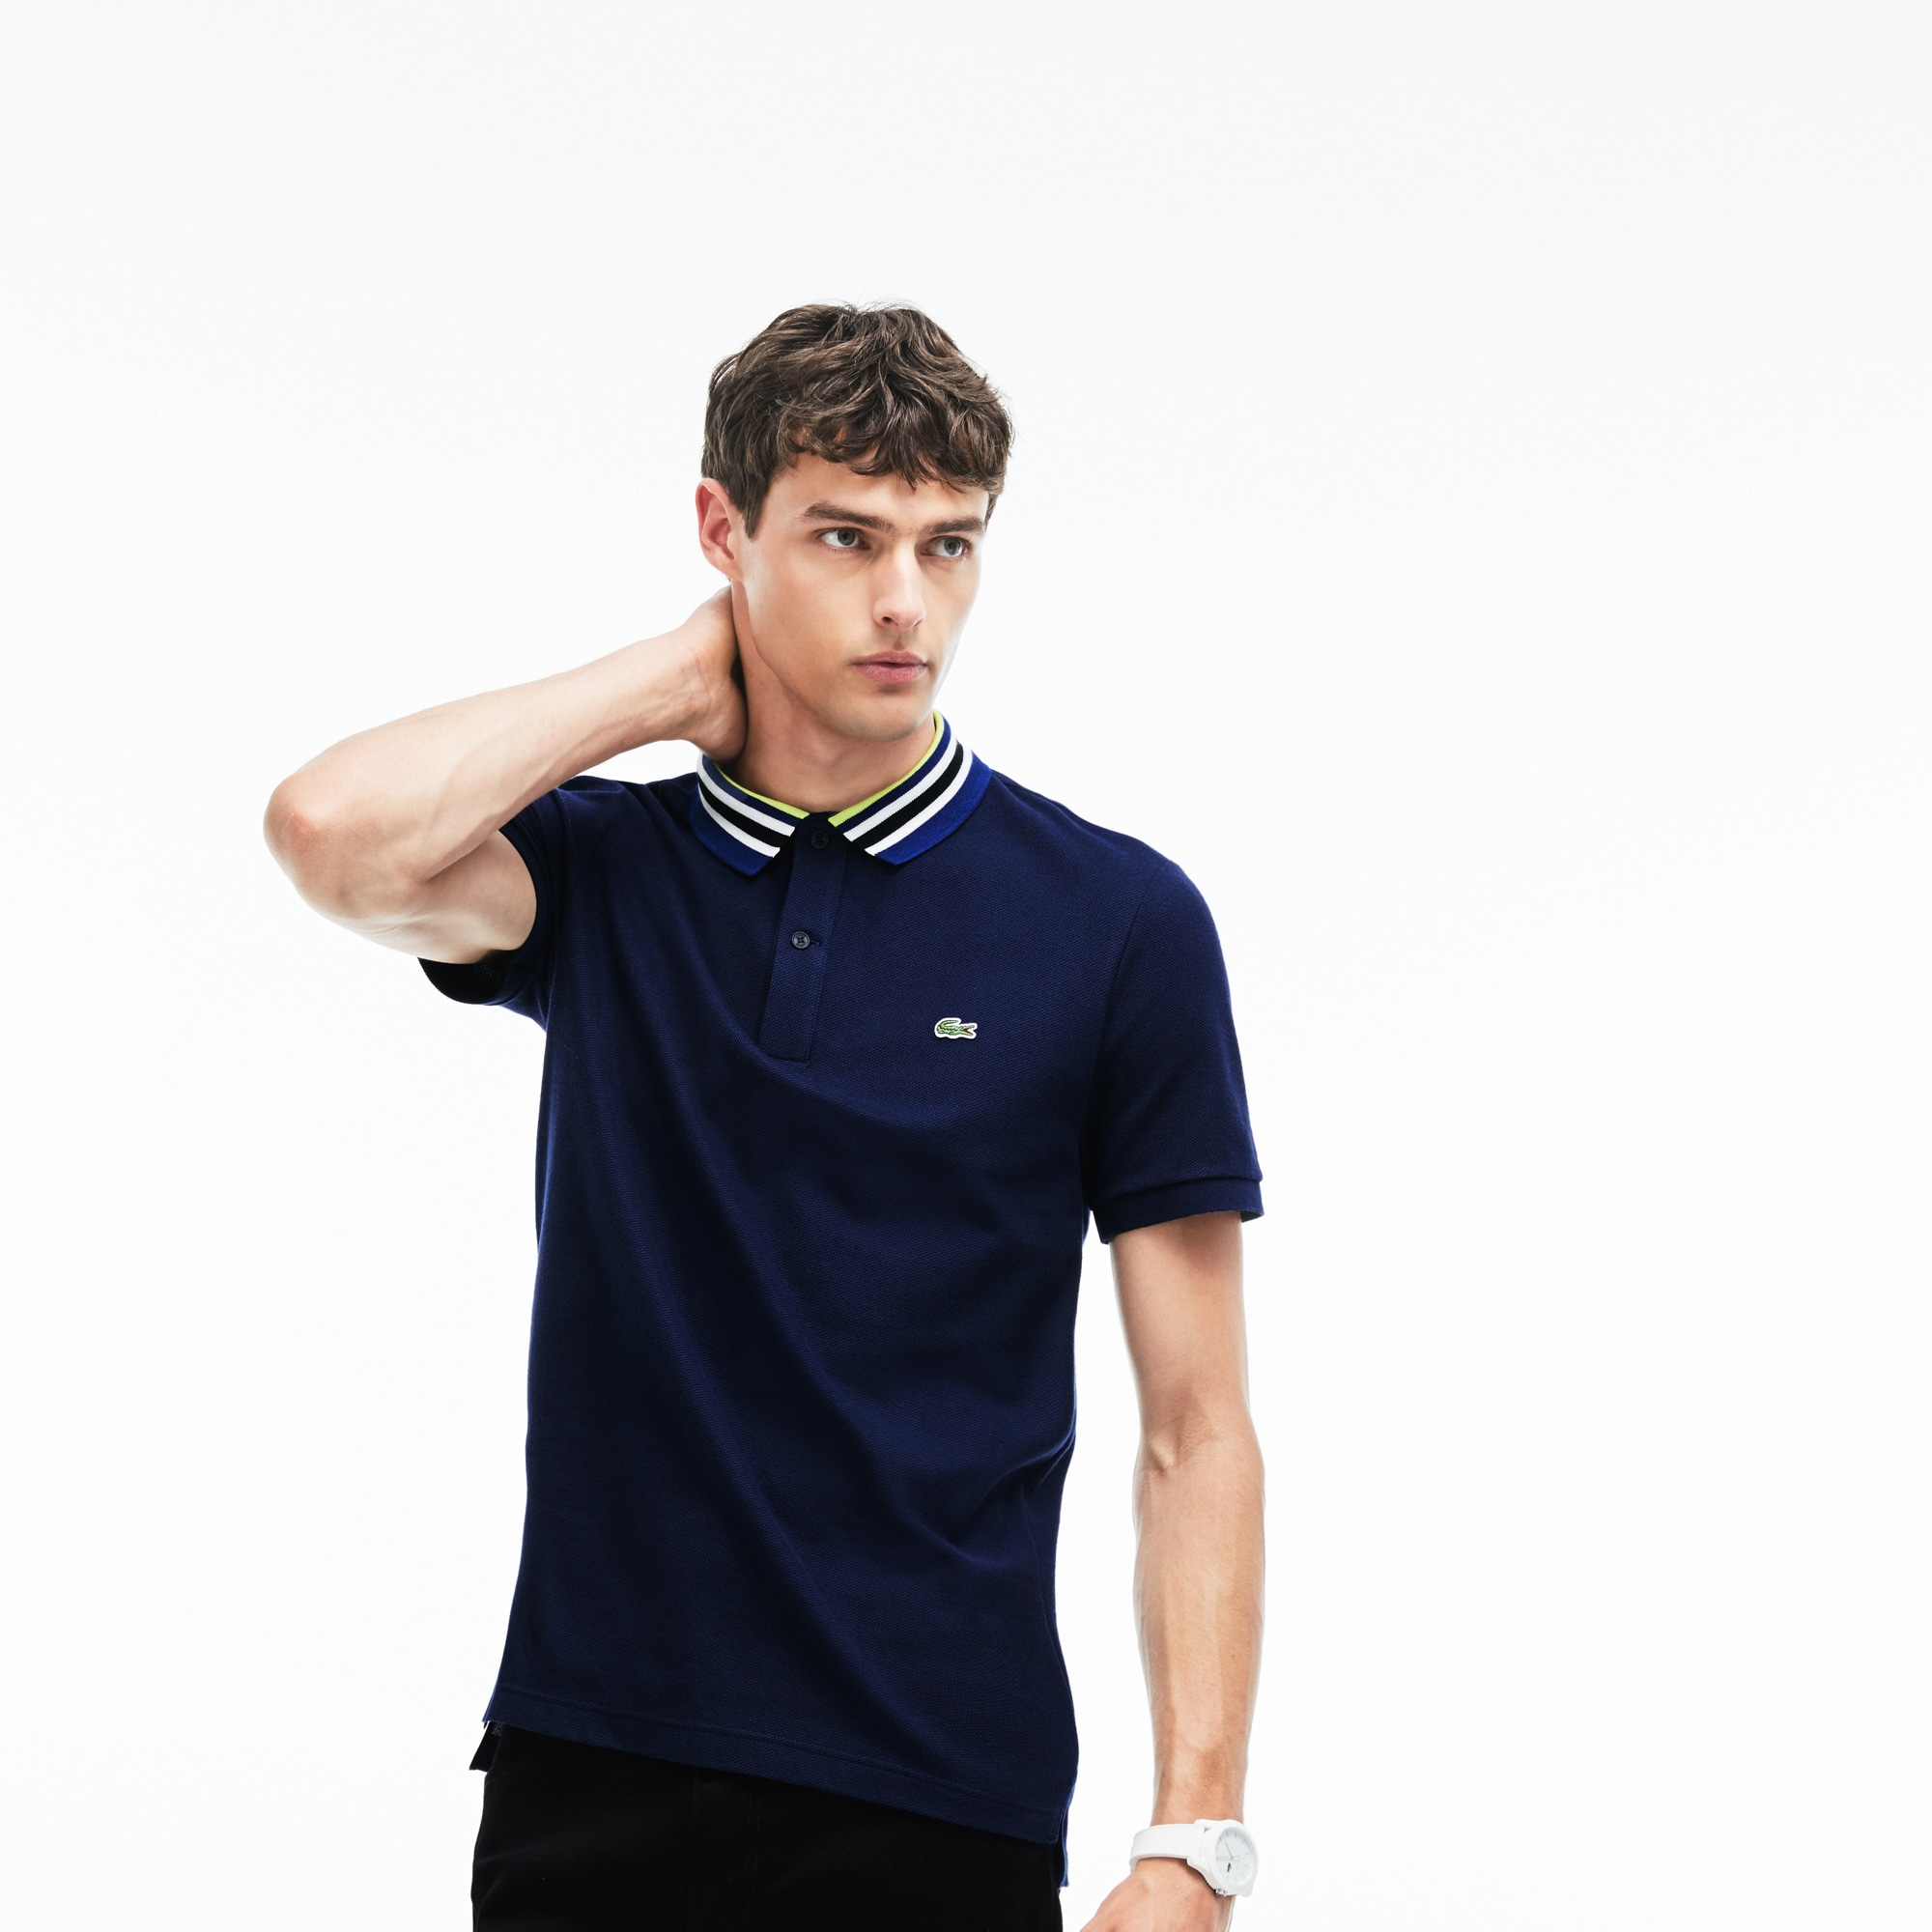 Polo slim fit Lacoste en piqué de coton avec piping au col